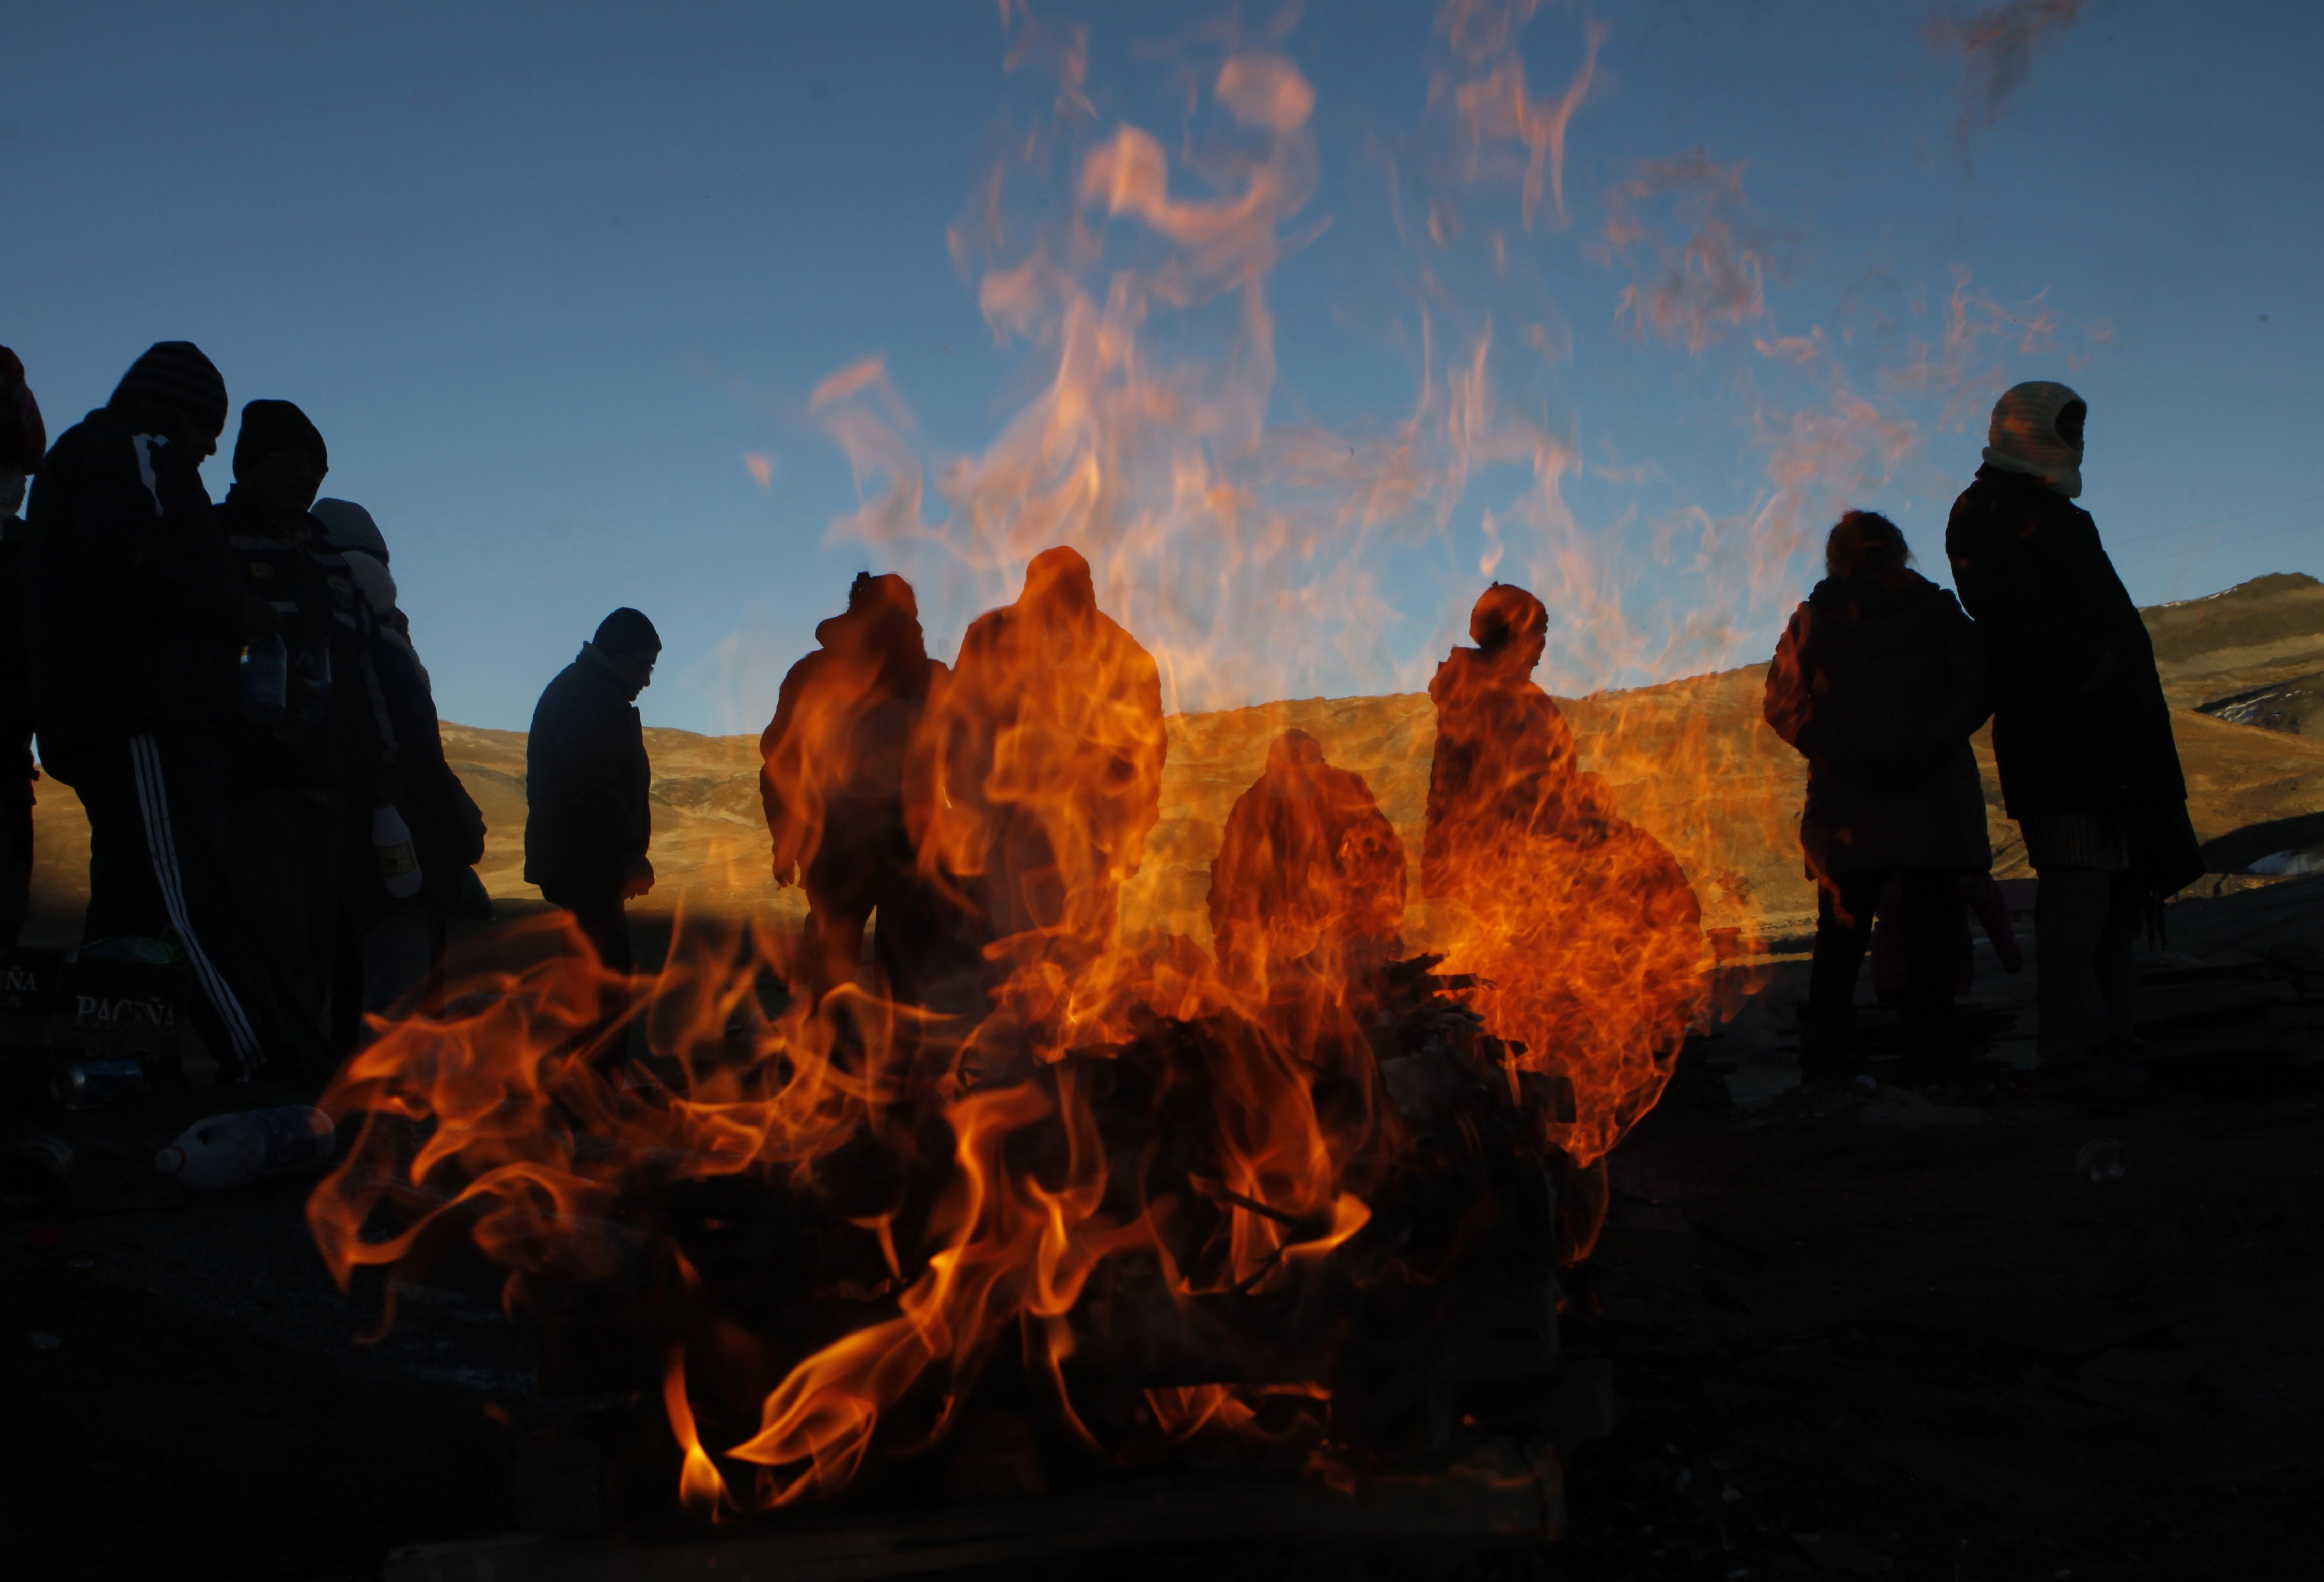 Aug. 1, 2014. People burn offerings to  Pachamama,  or  Mother Earth,  on La Cumbre, a mountain that is considered scared ground, on the outskirts of La Paz, Bolivia.